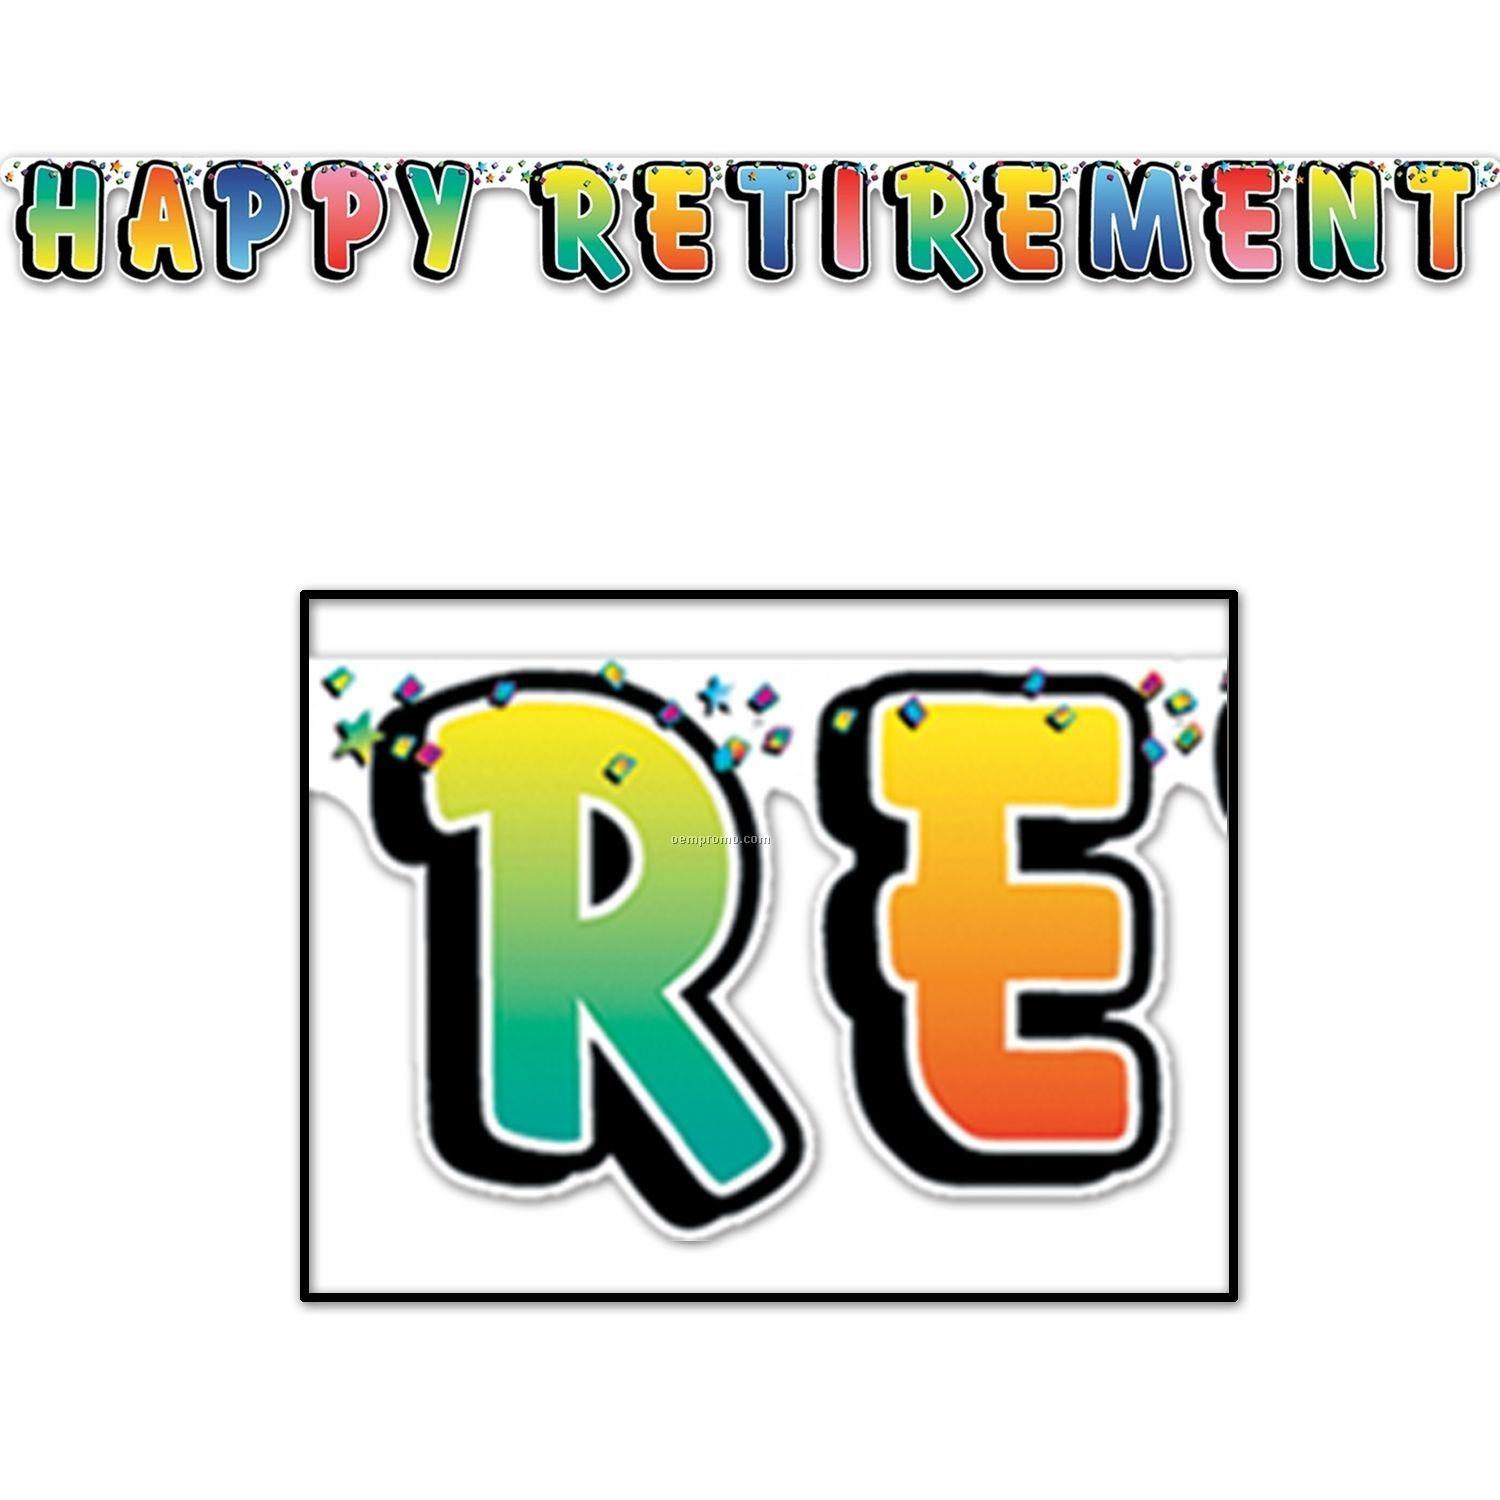 1500x1500 Best Of Retirement Clipart Collection